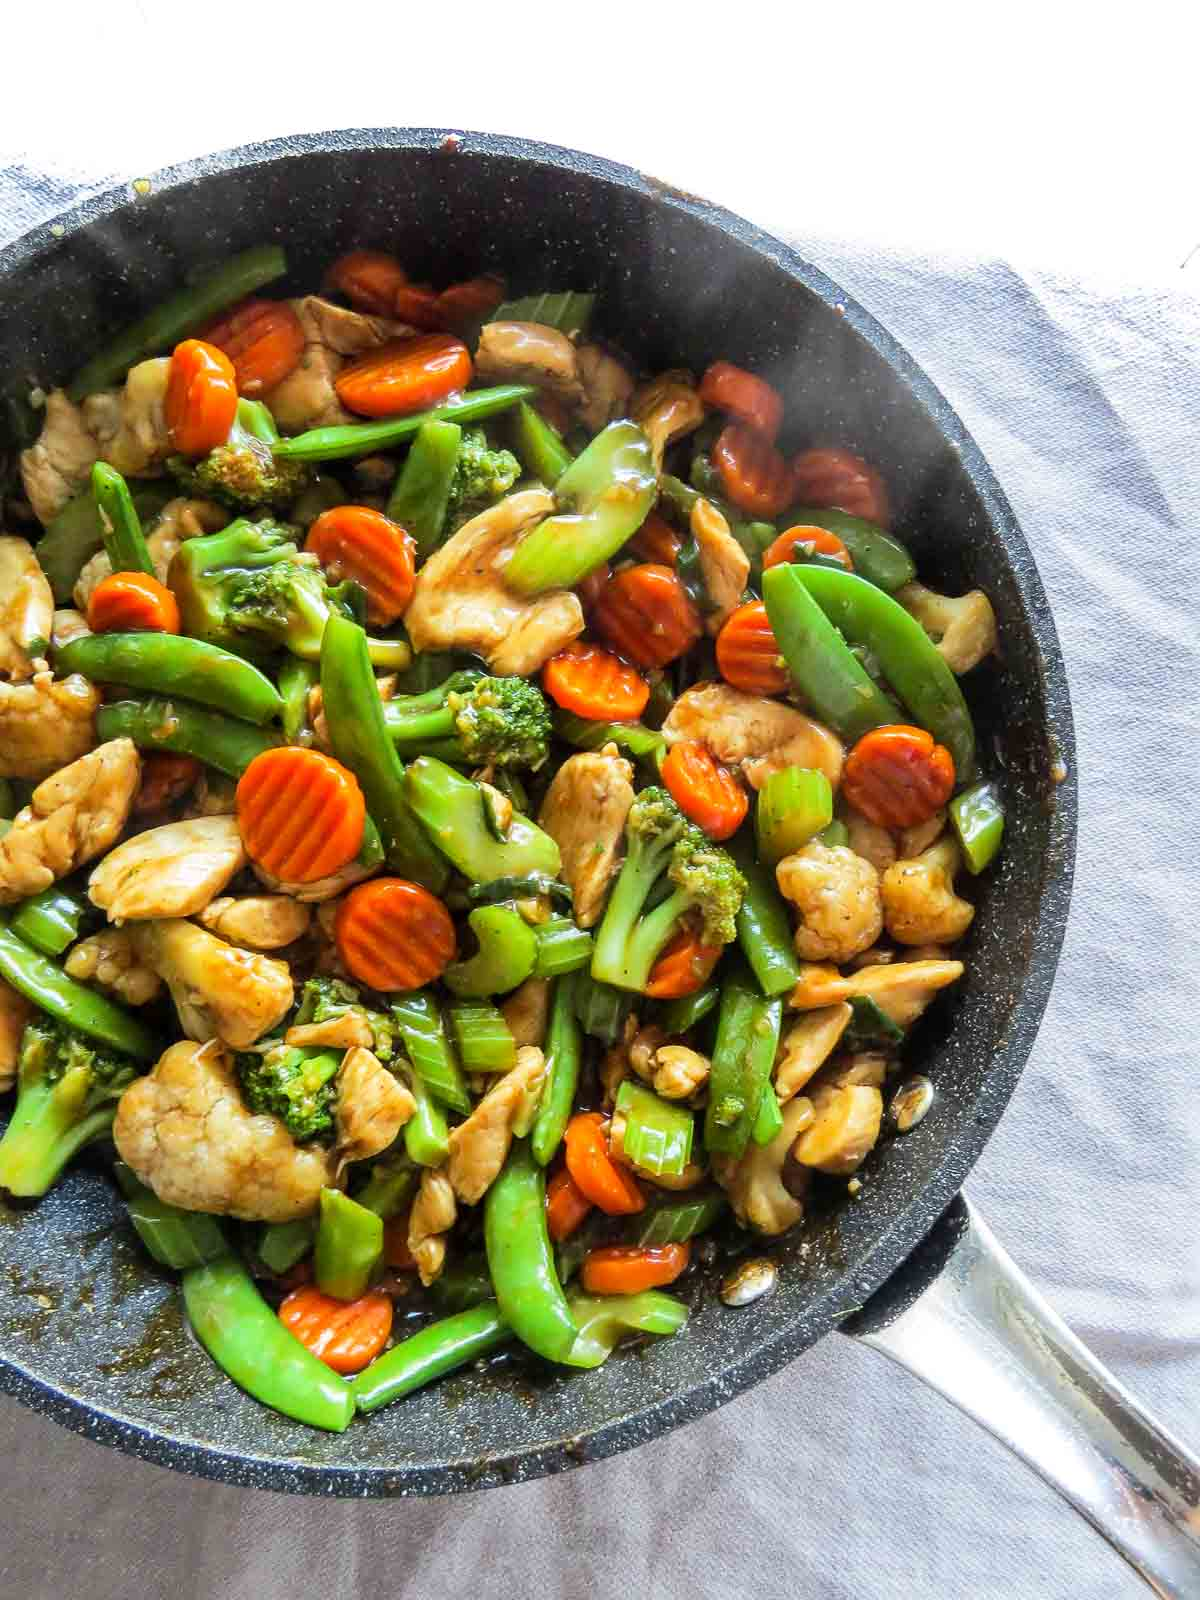 Kitchen sink chinese stir fry the beader chef kitchen sink chinese stir fry to the rescue got fresh and frozen vegetables lying around forumfinder Image collections